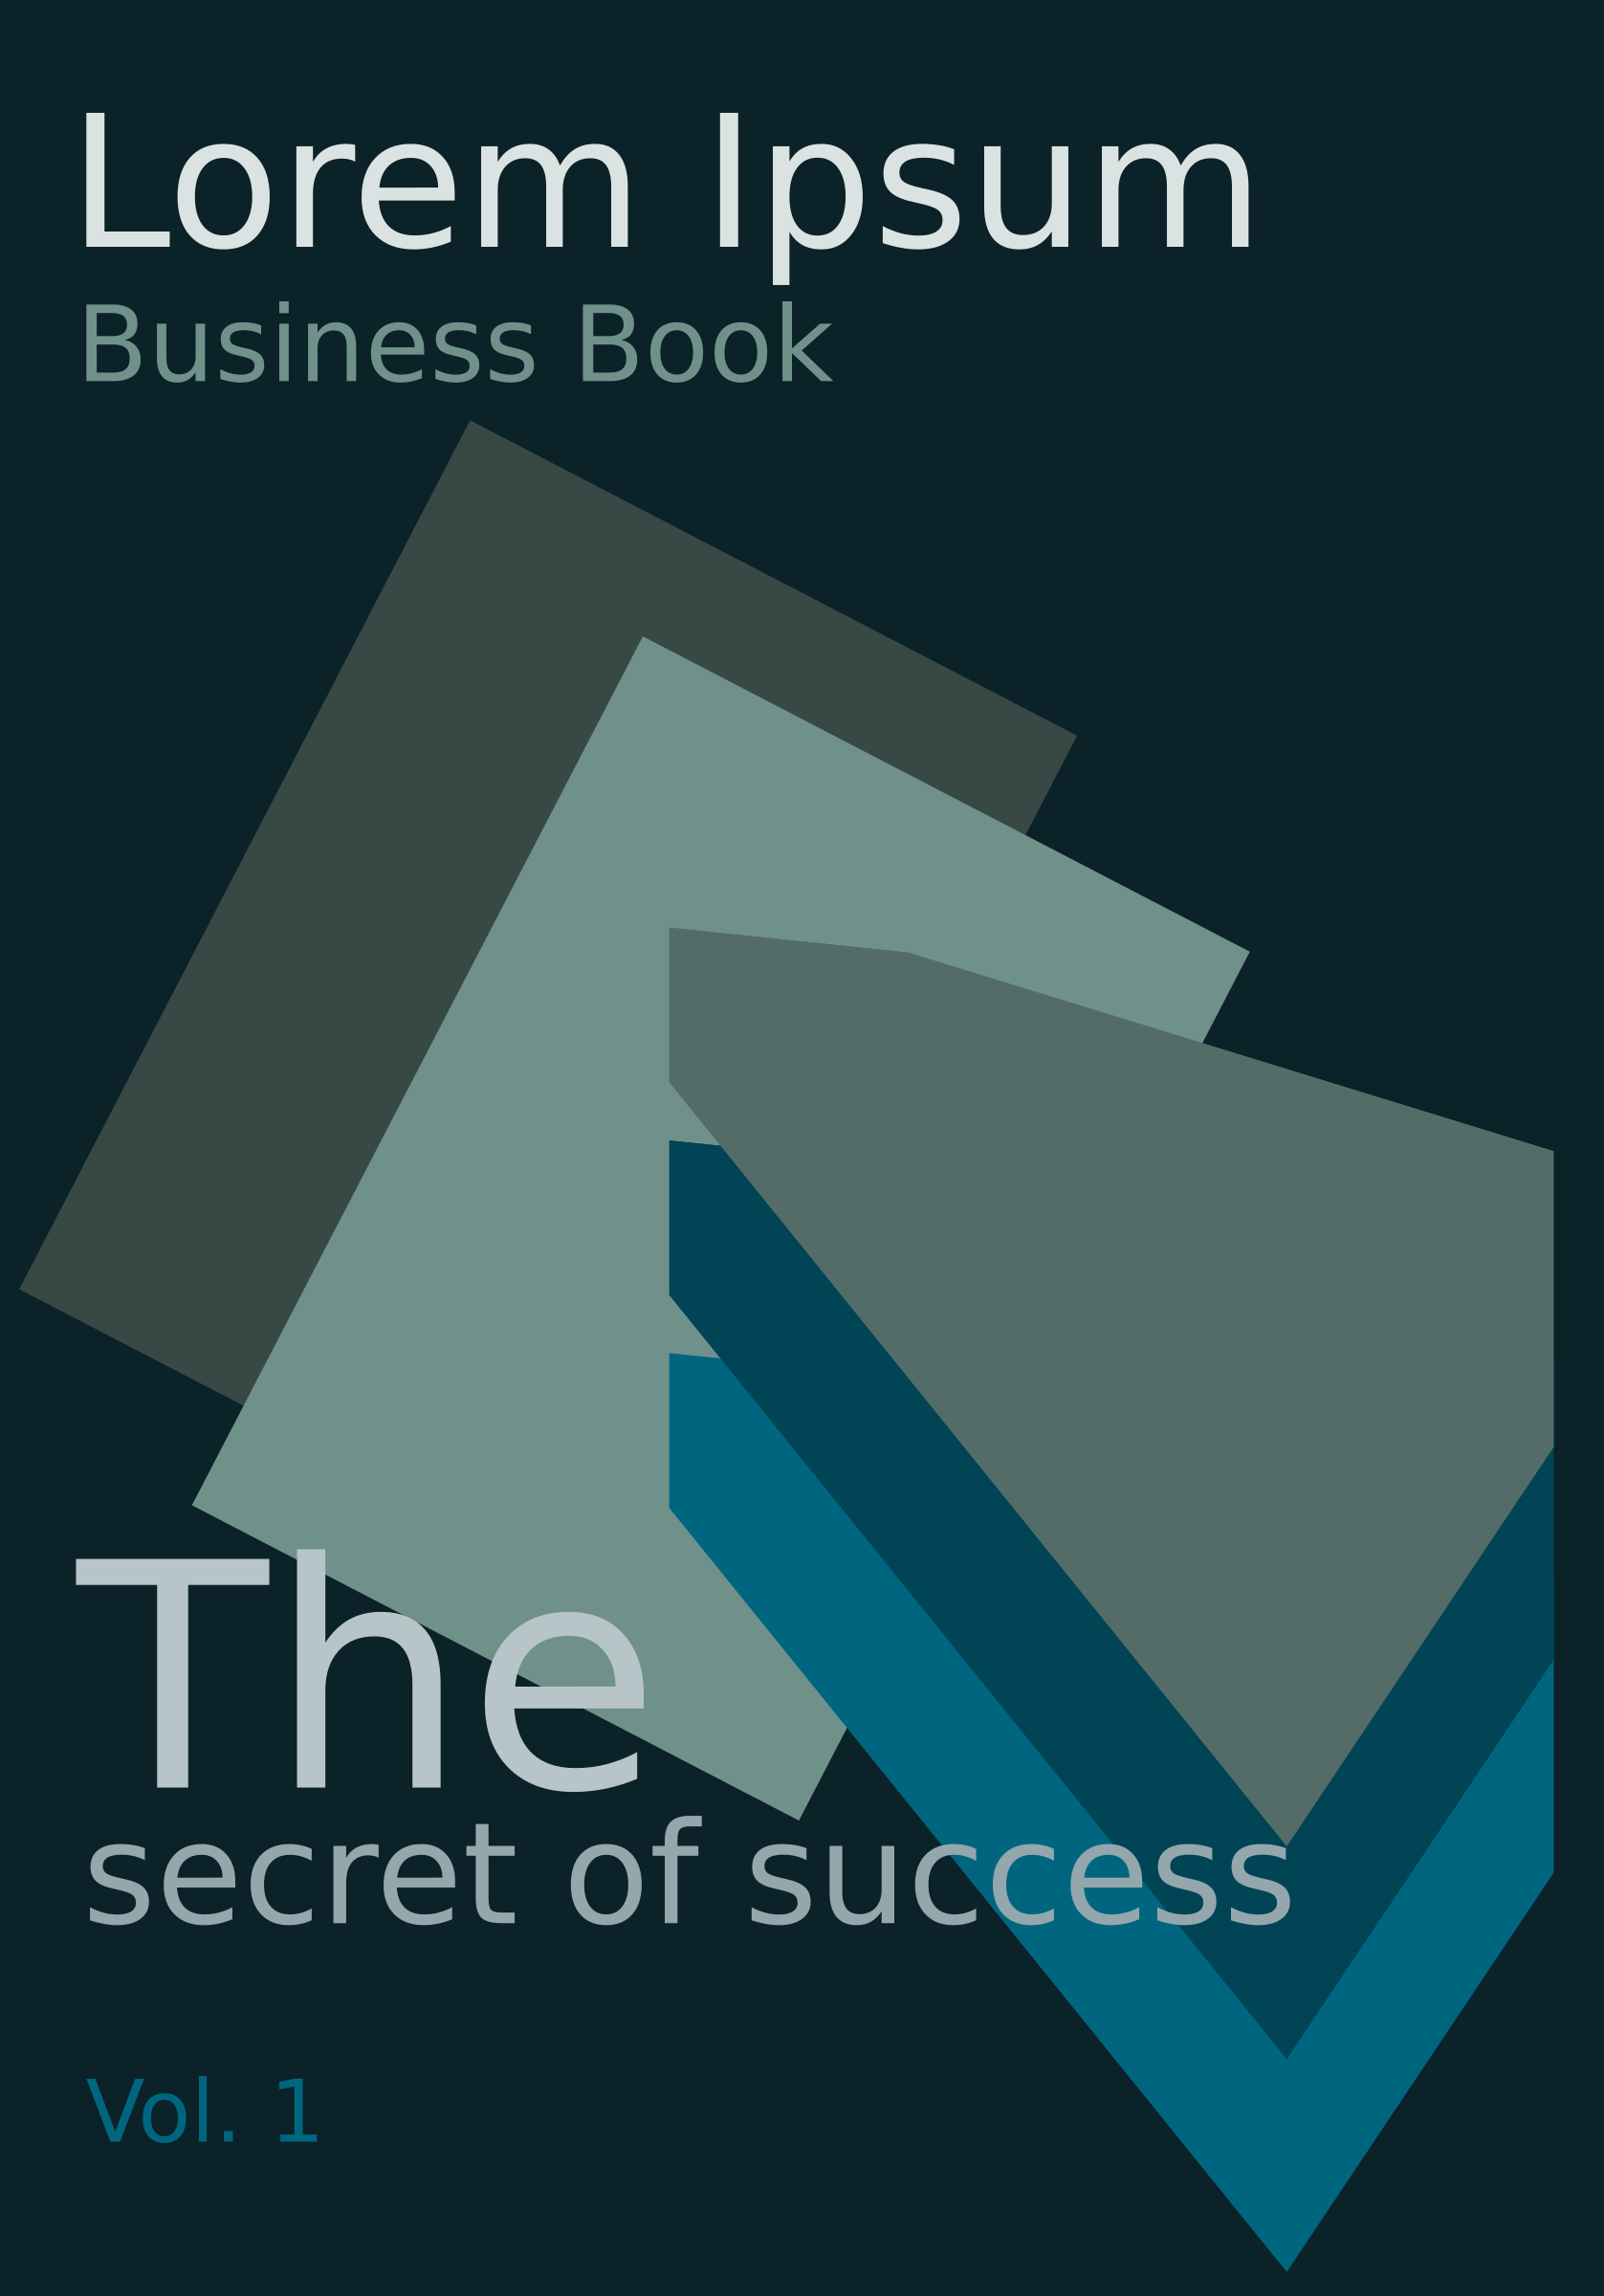 Business Book by hackdorte